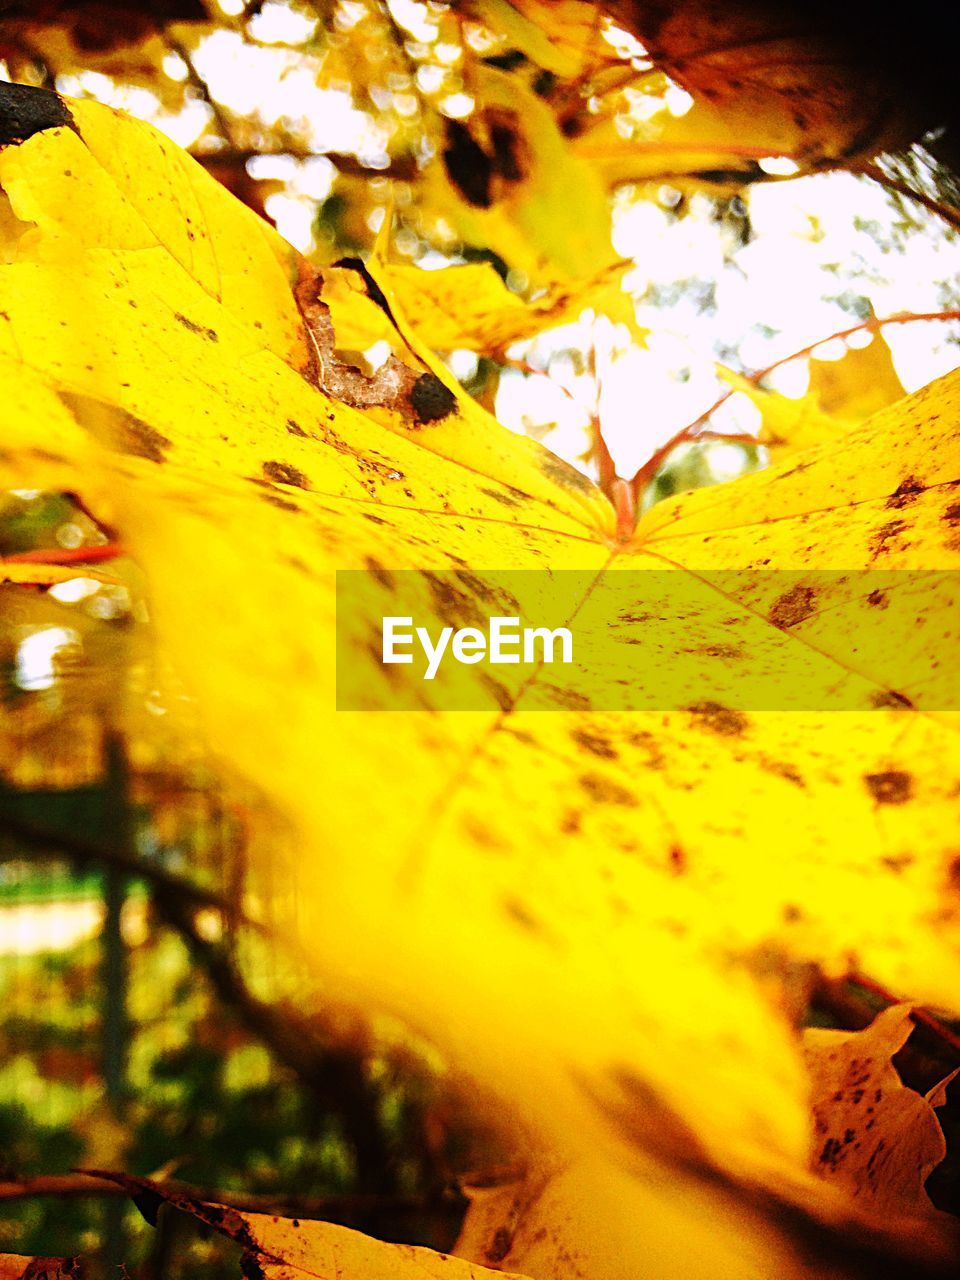 leaf, yellow, nature, selective focus, change, beauty in nature, autumn, outdoors, close-up, no people, growth, fragility, day, tree, maple, freshness